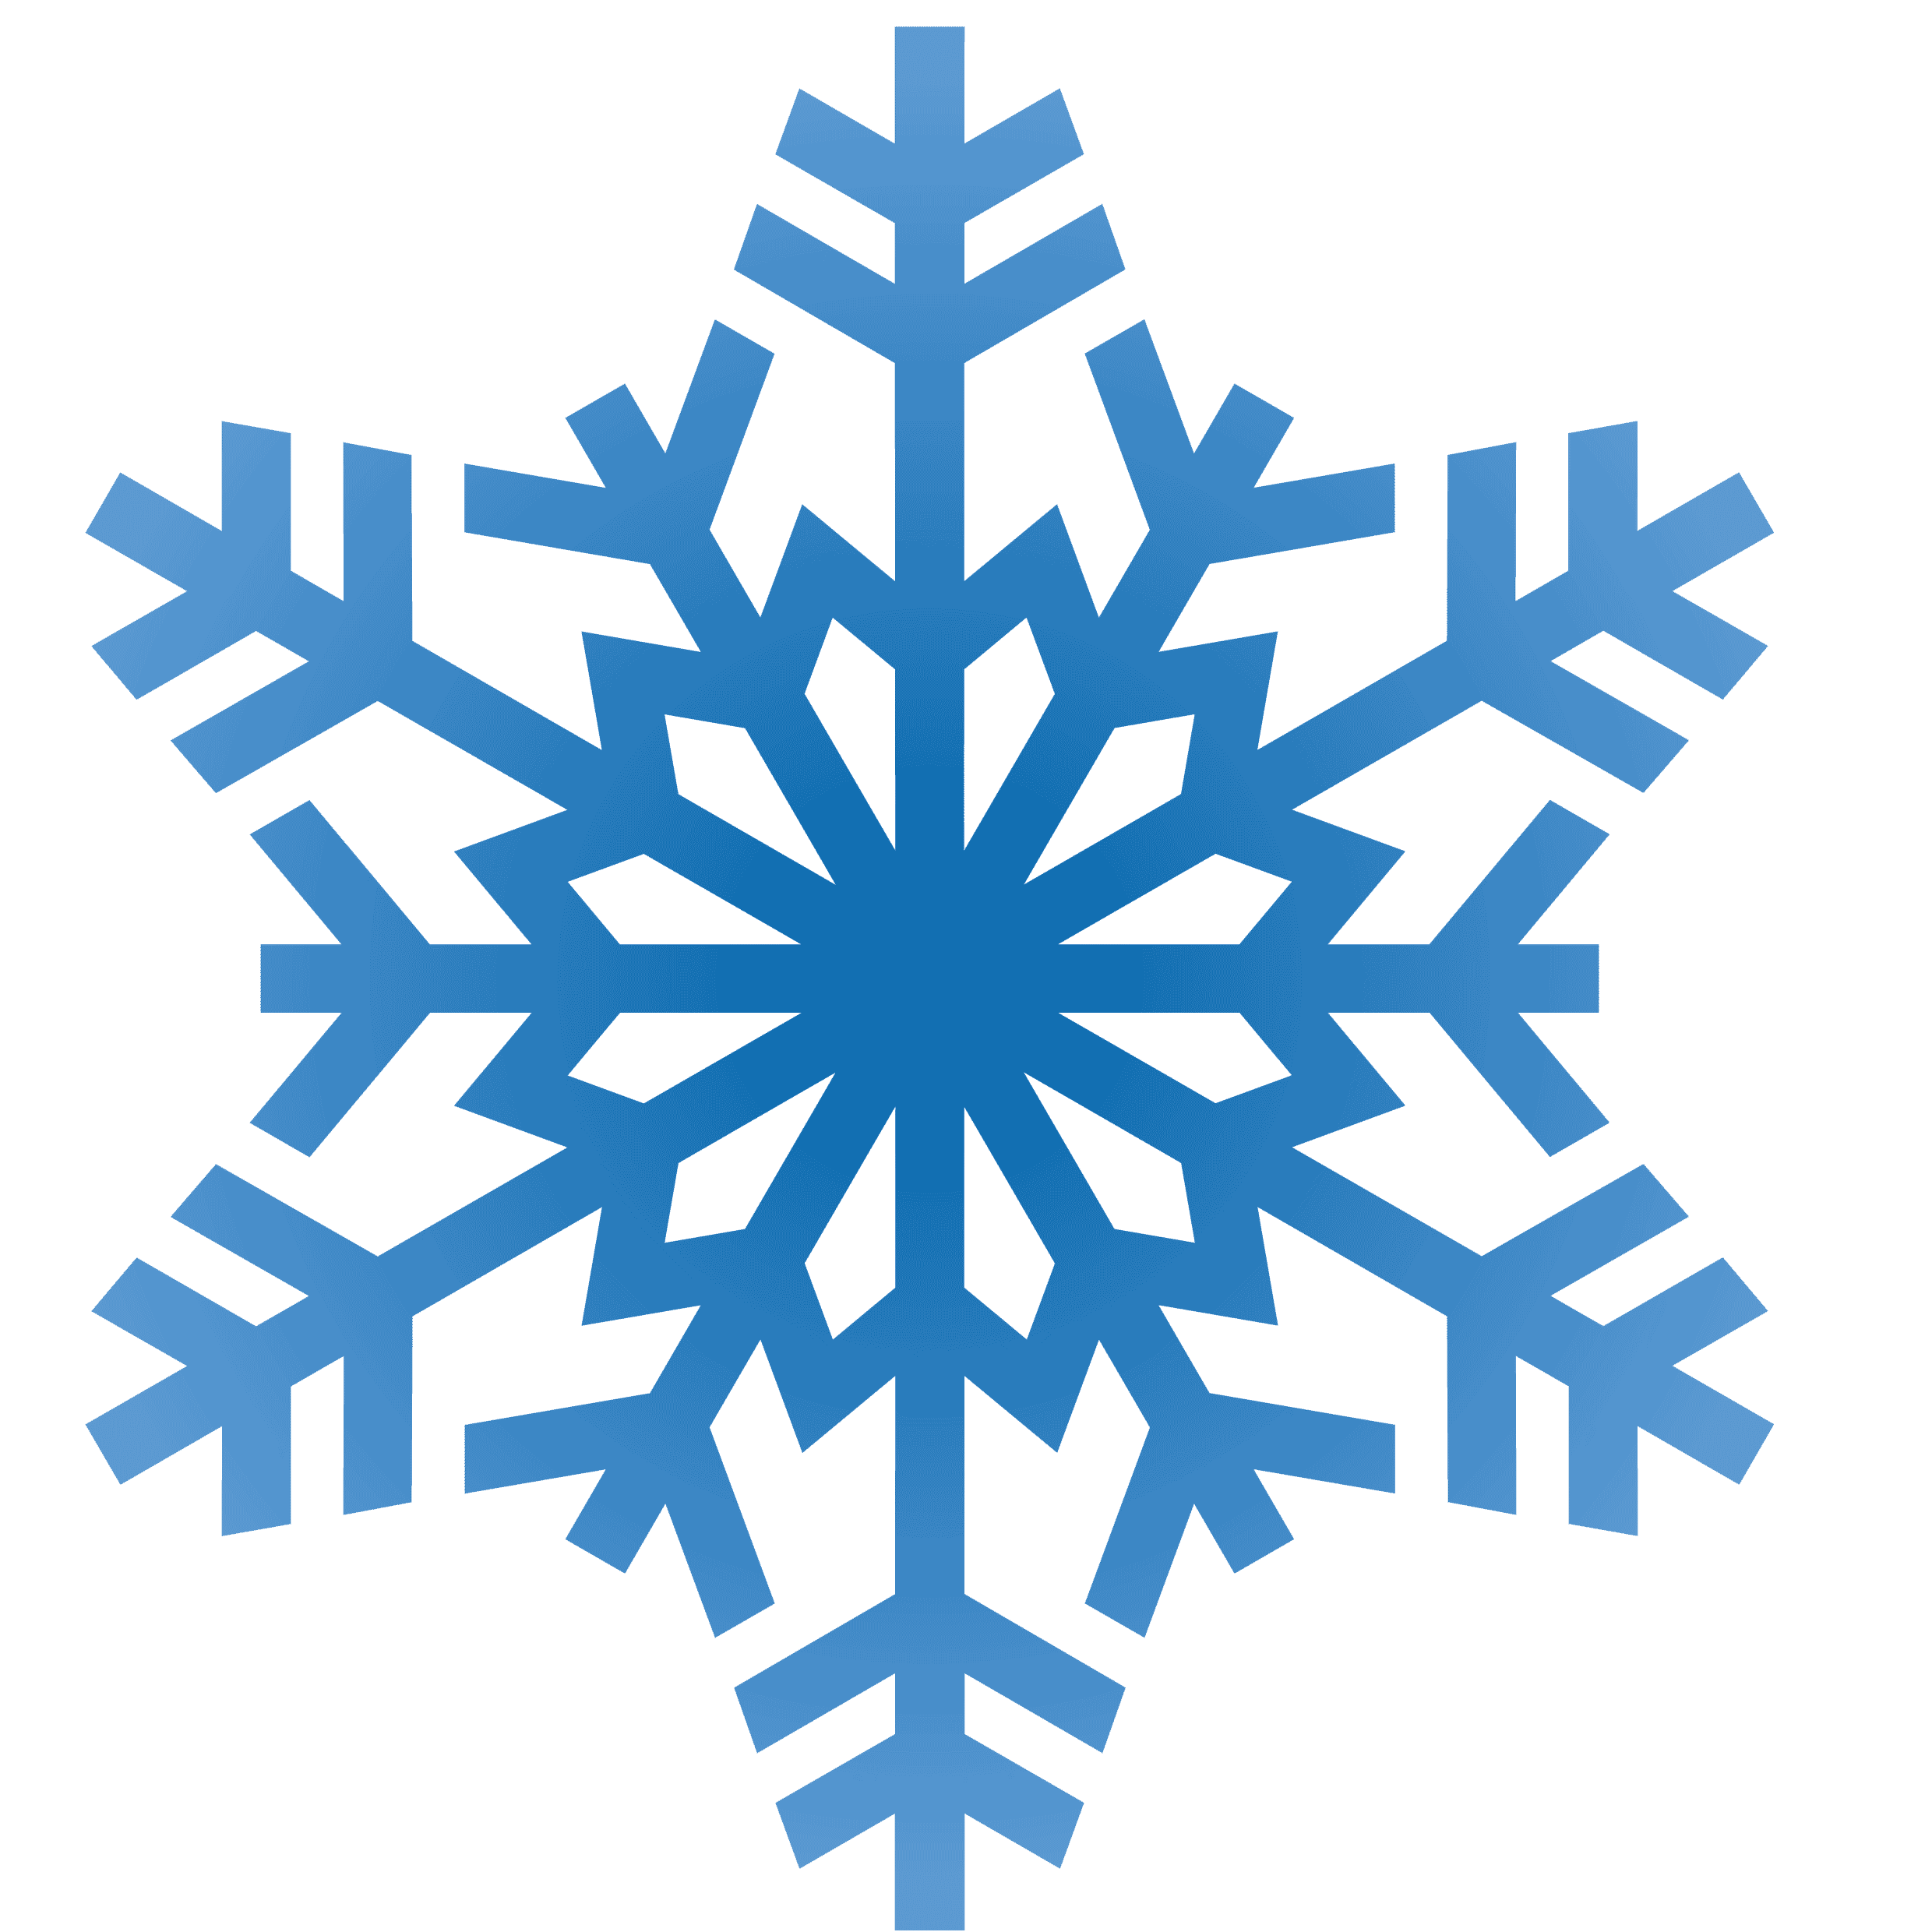 Silvere snowflake clipart jpg library stock Winter Roundup! The best of places to go, things to do and tips for ... jpg library stock